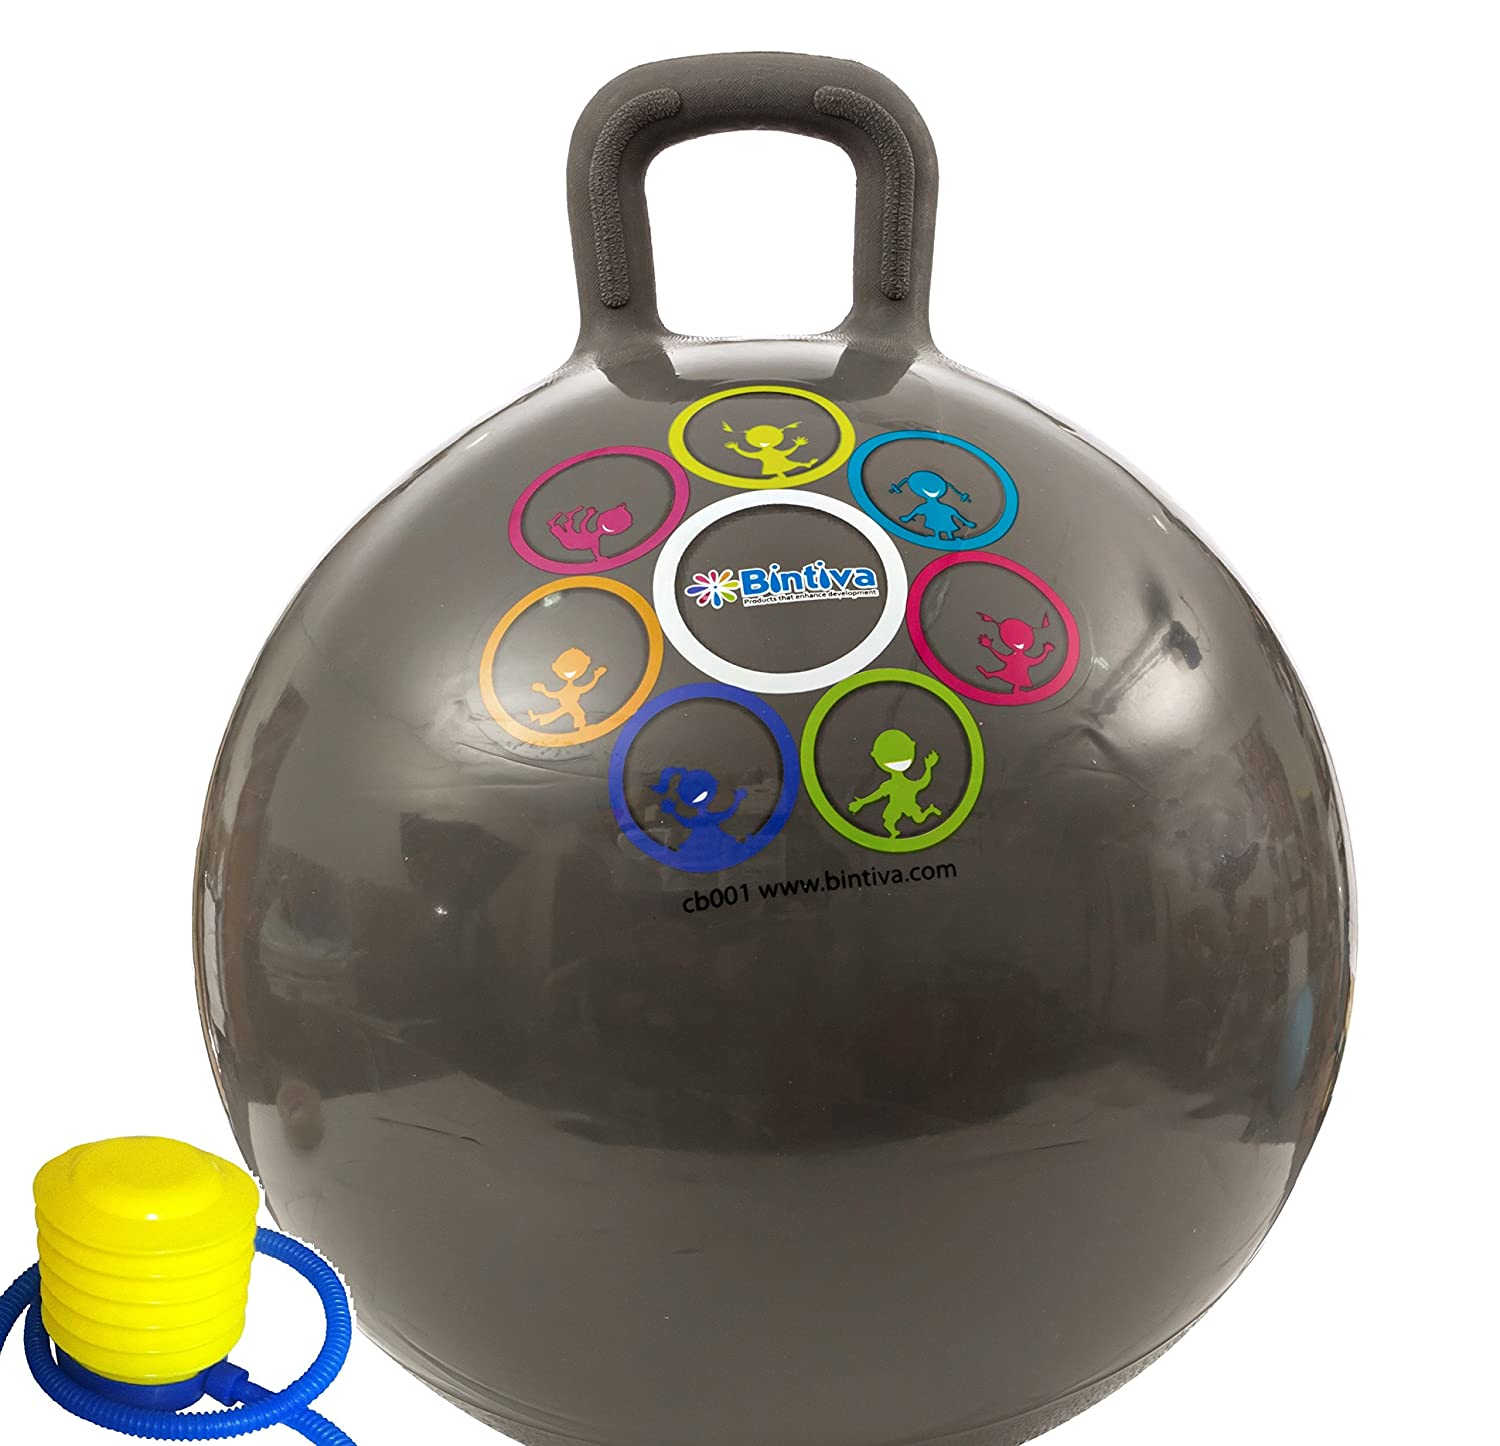 Hippity Hop 45 Cm / 18 Inch Diameter Including Free Foot Pump, For Children Ages 3-6 Space Hopper, Hop Ball Bouncing Toy - 1 Ball bintiva